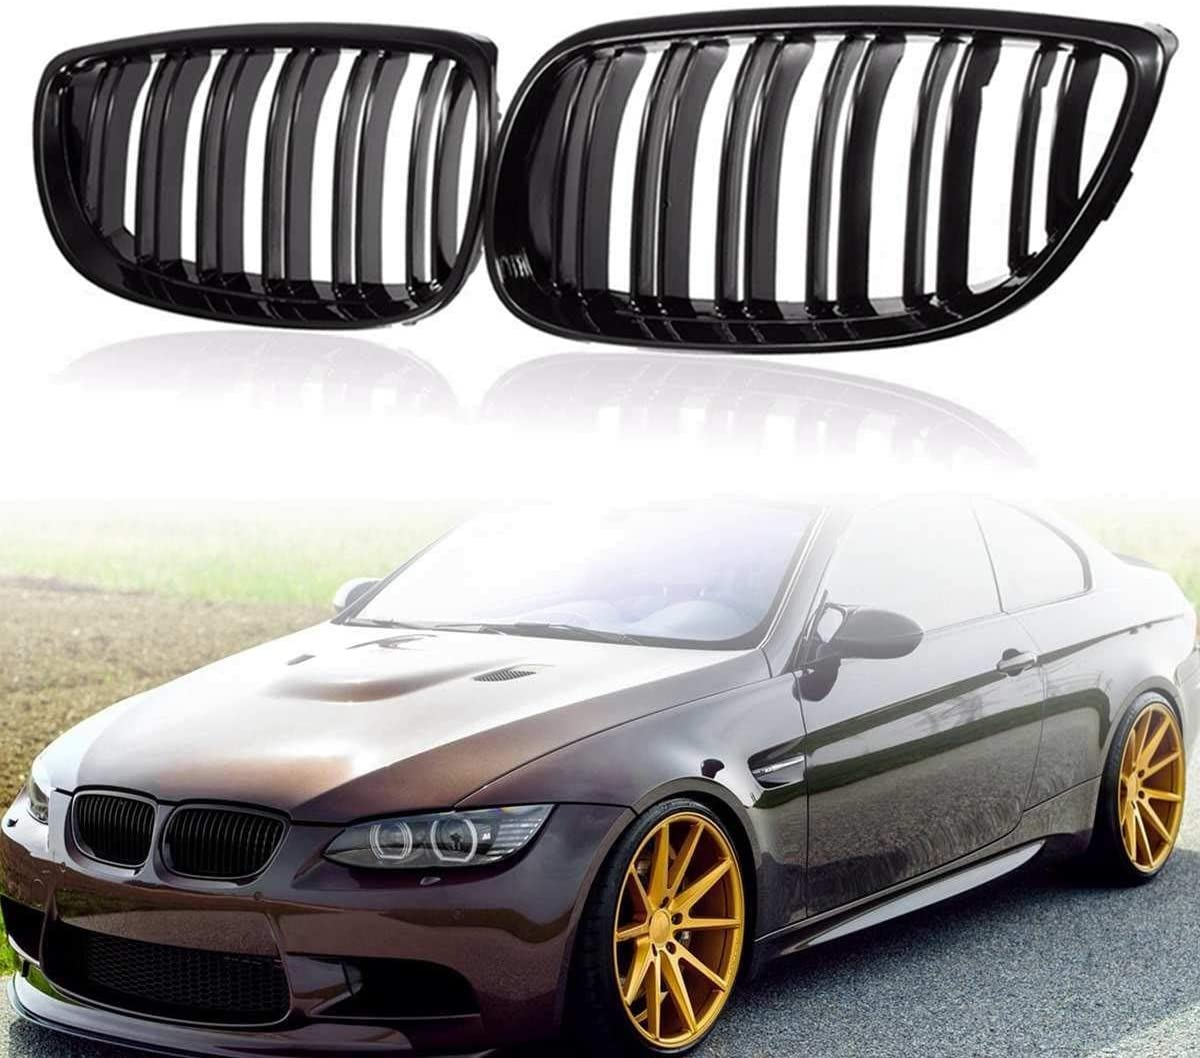 ASDZ Pair Gloss Black Double Line Front Kidney Grille Grill for BMW E92 E93 3-Series 2007 2008 2009 2010 Car Racing Grills Racing Grills